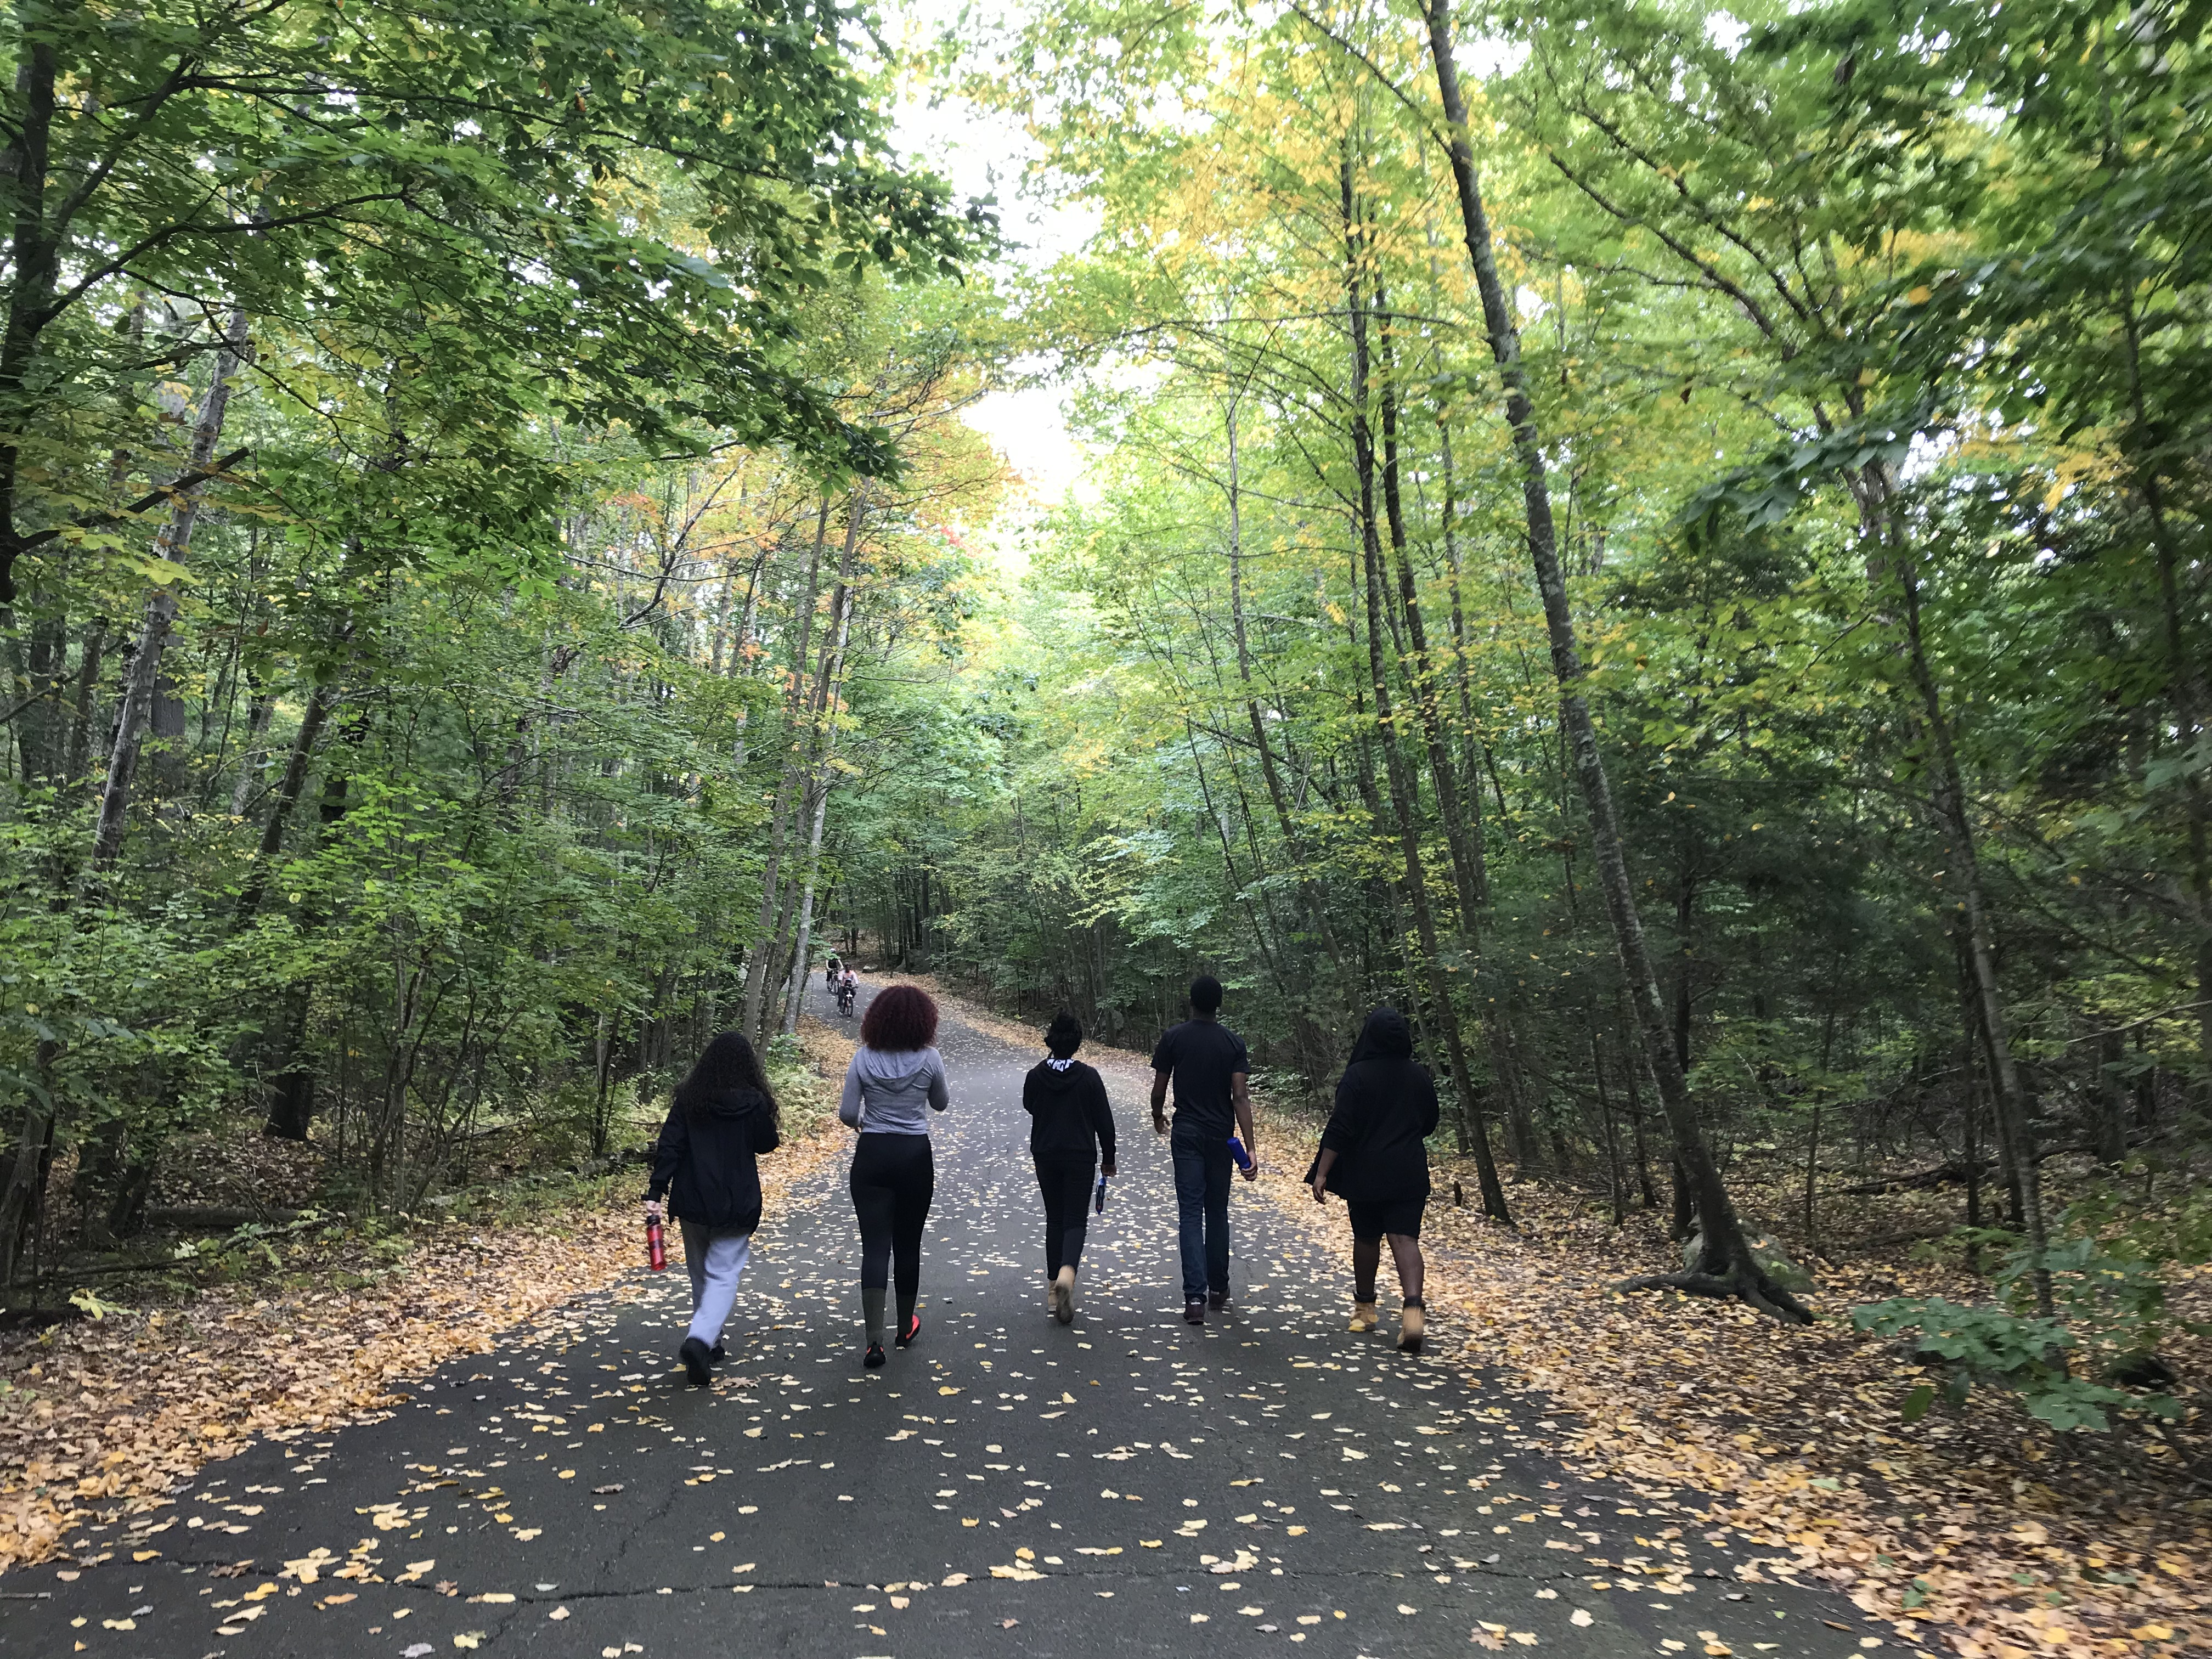 5 Fall PLACE Fellows walk away from the camera down a paved path through a forest in Wompatuck State Park